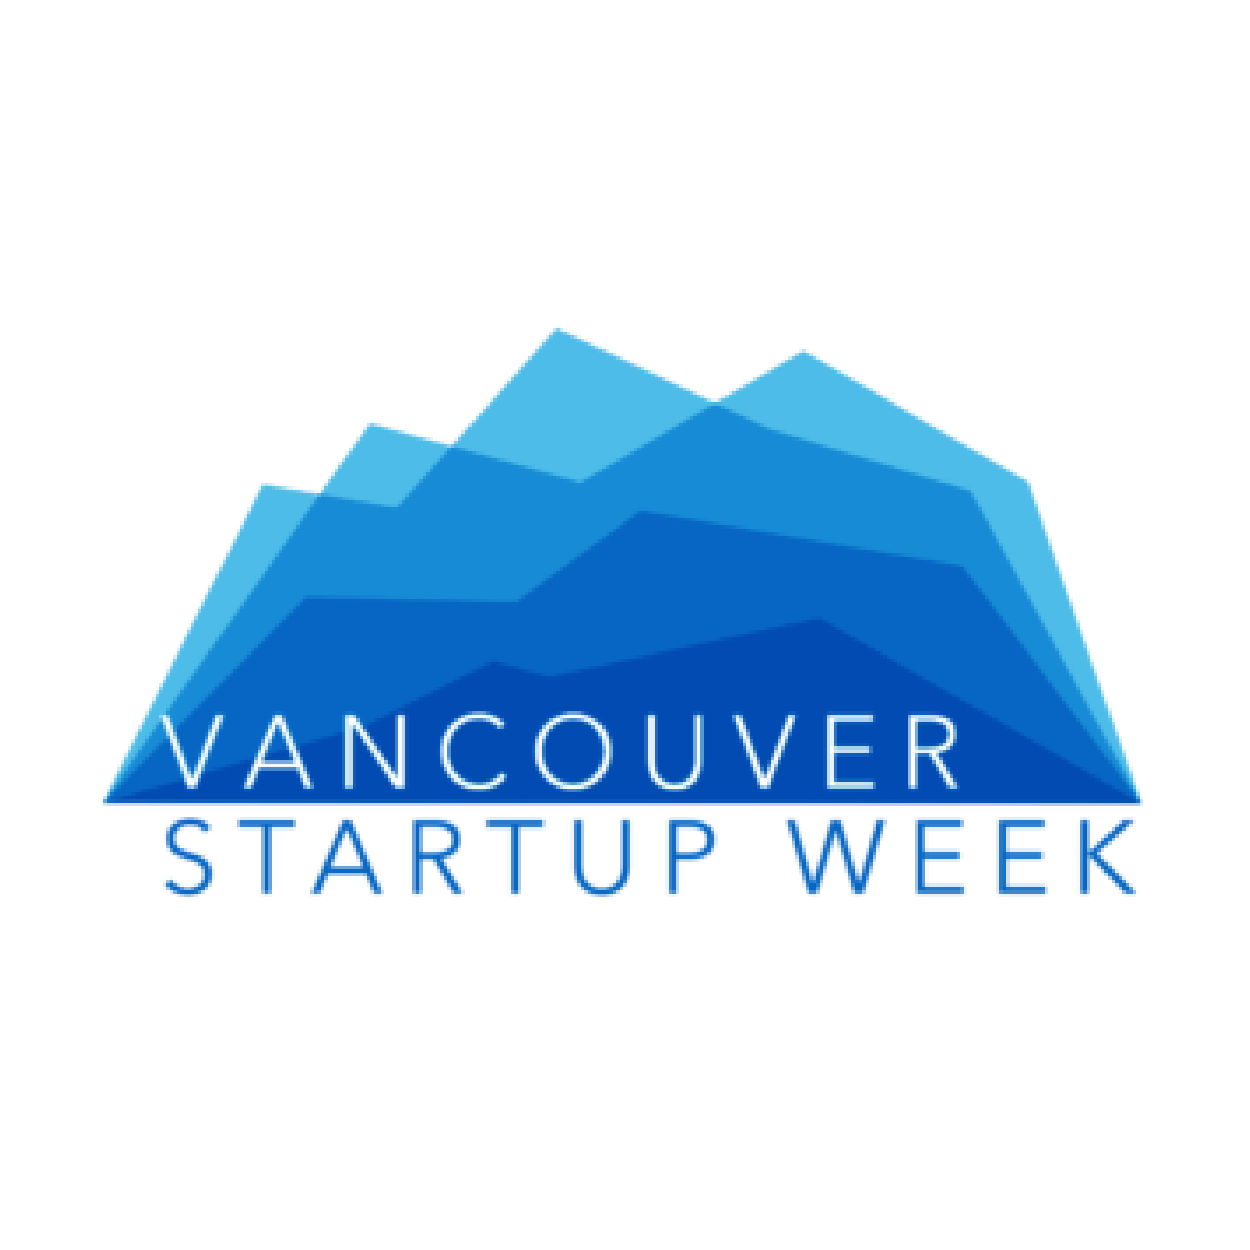 vancouver-startup-week-01.png